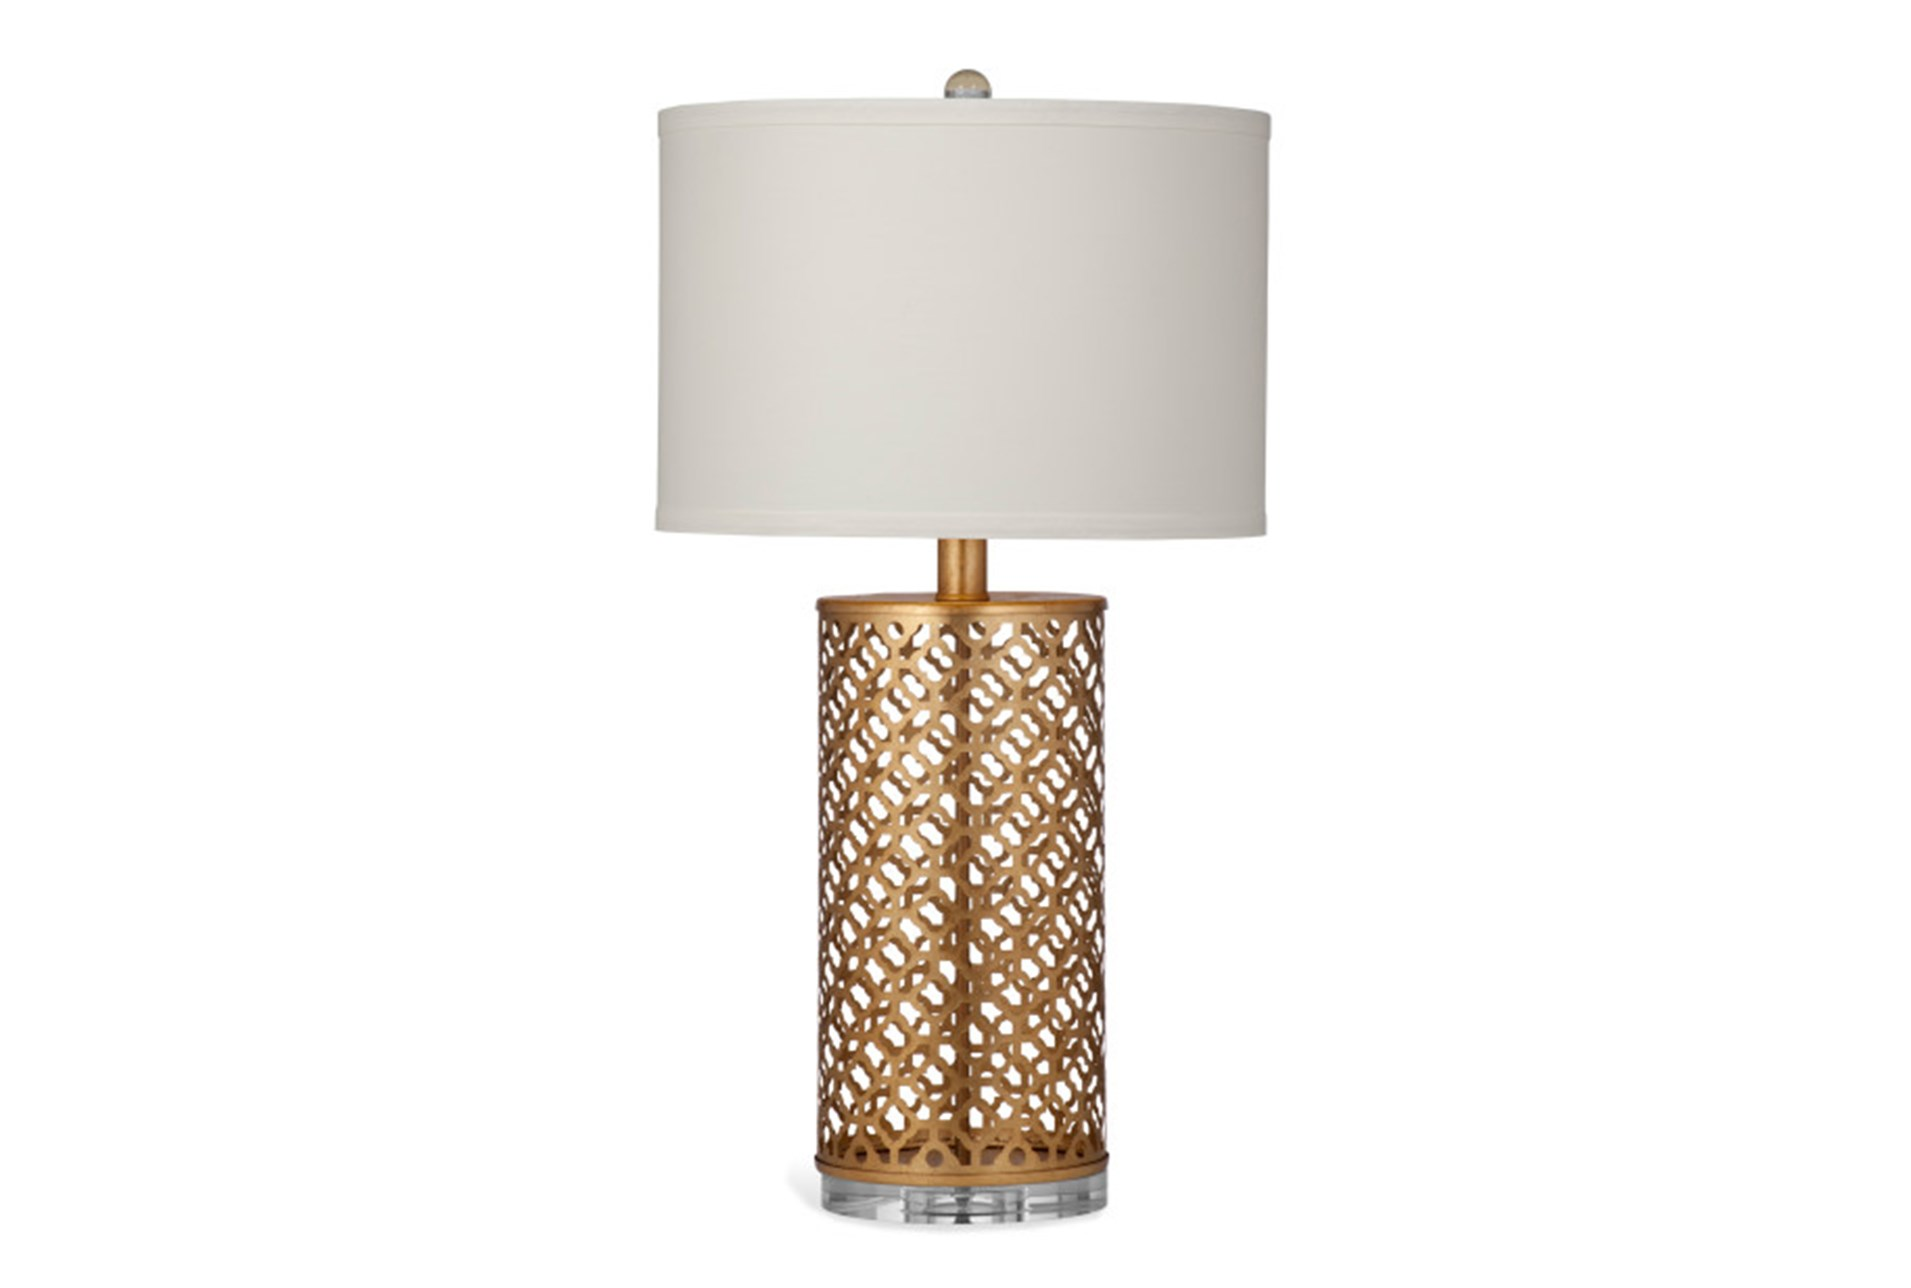 Table lamp gold metal quatrefoil living spaces table lamp gold metal quatrefoil qty 1 has been successfully added to your cart mozeypictures Images